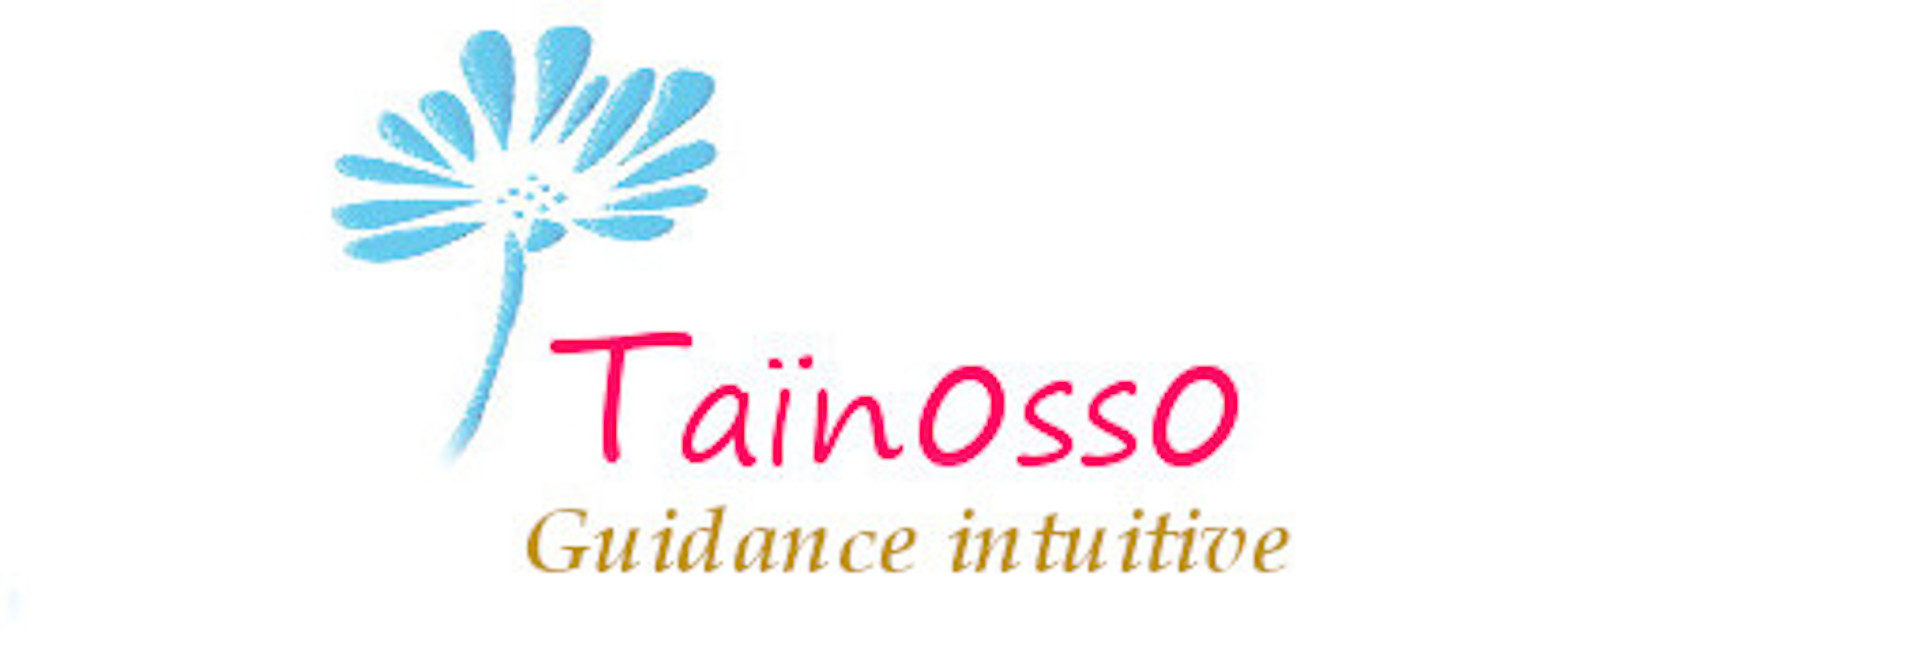 Taïnosso Guidance intuitive